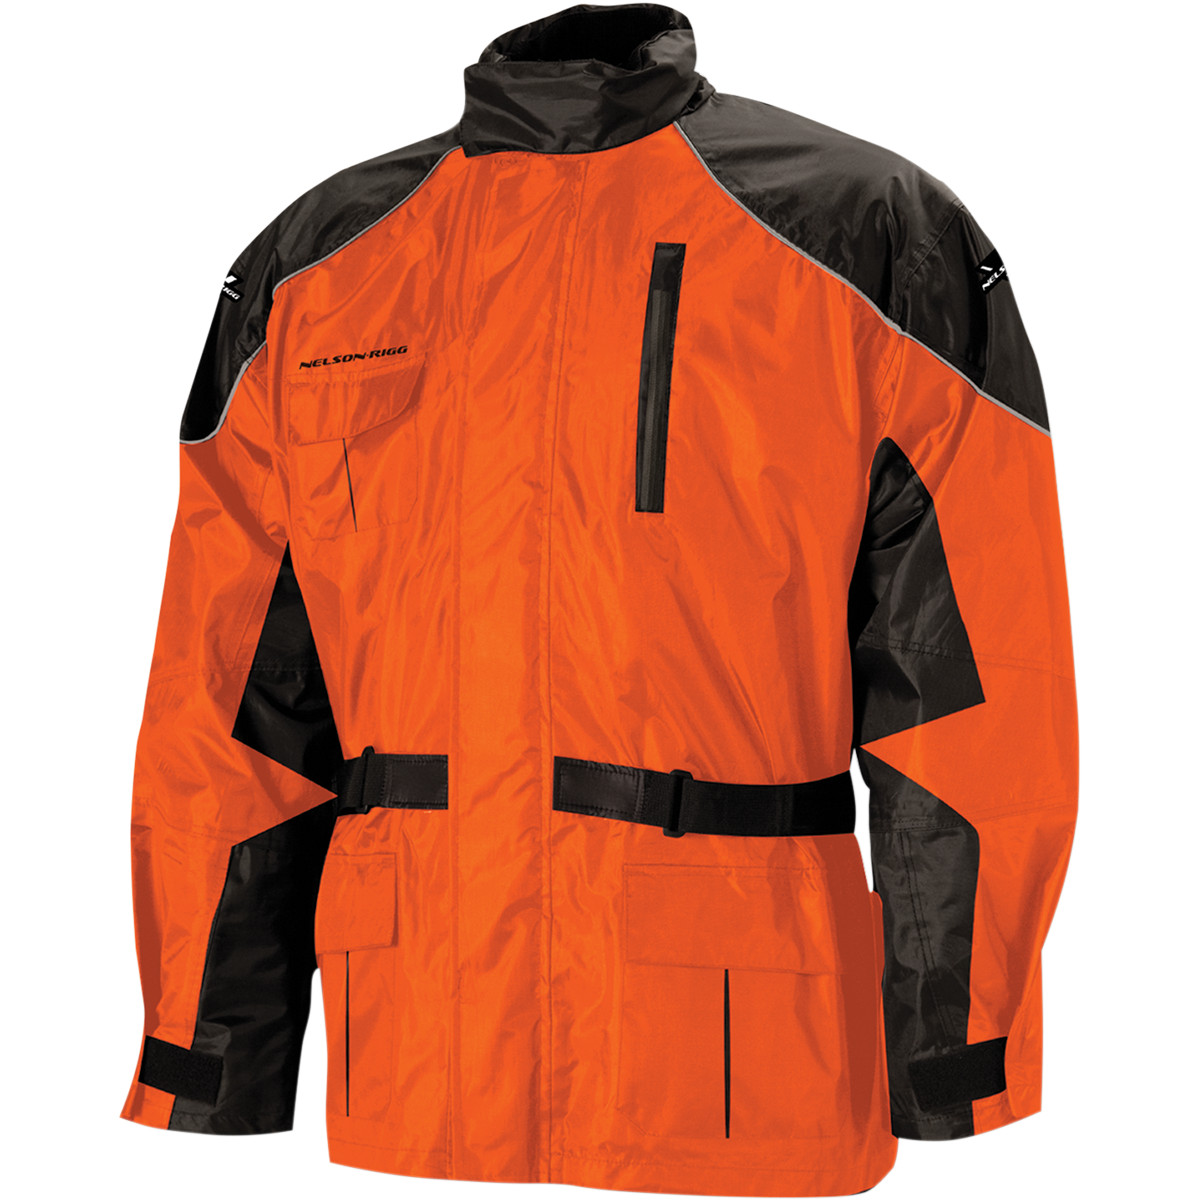 Nelson-Rigg AS-3000 Aston 2-Piece Rain Suit Orange